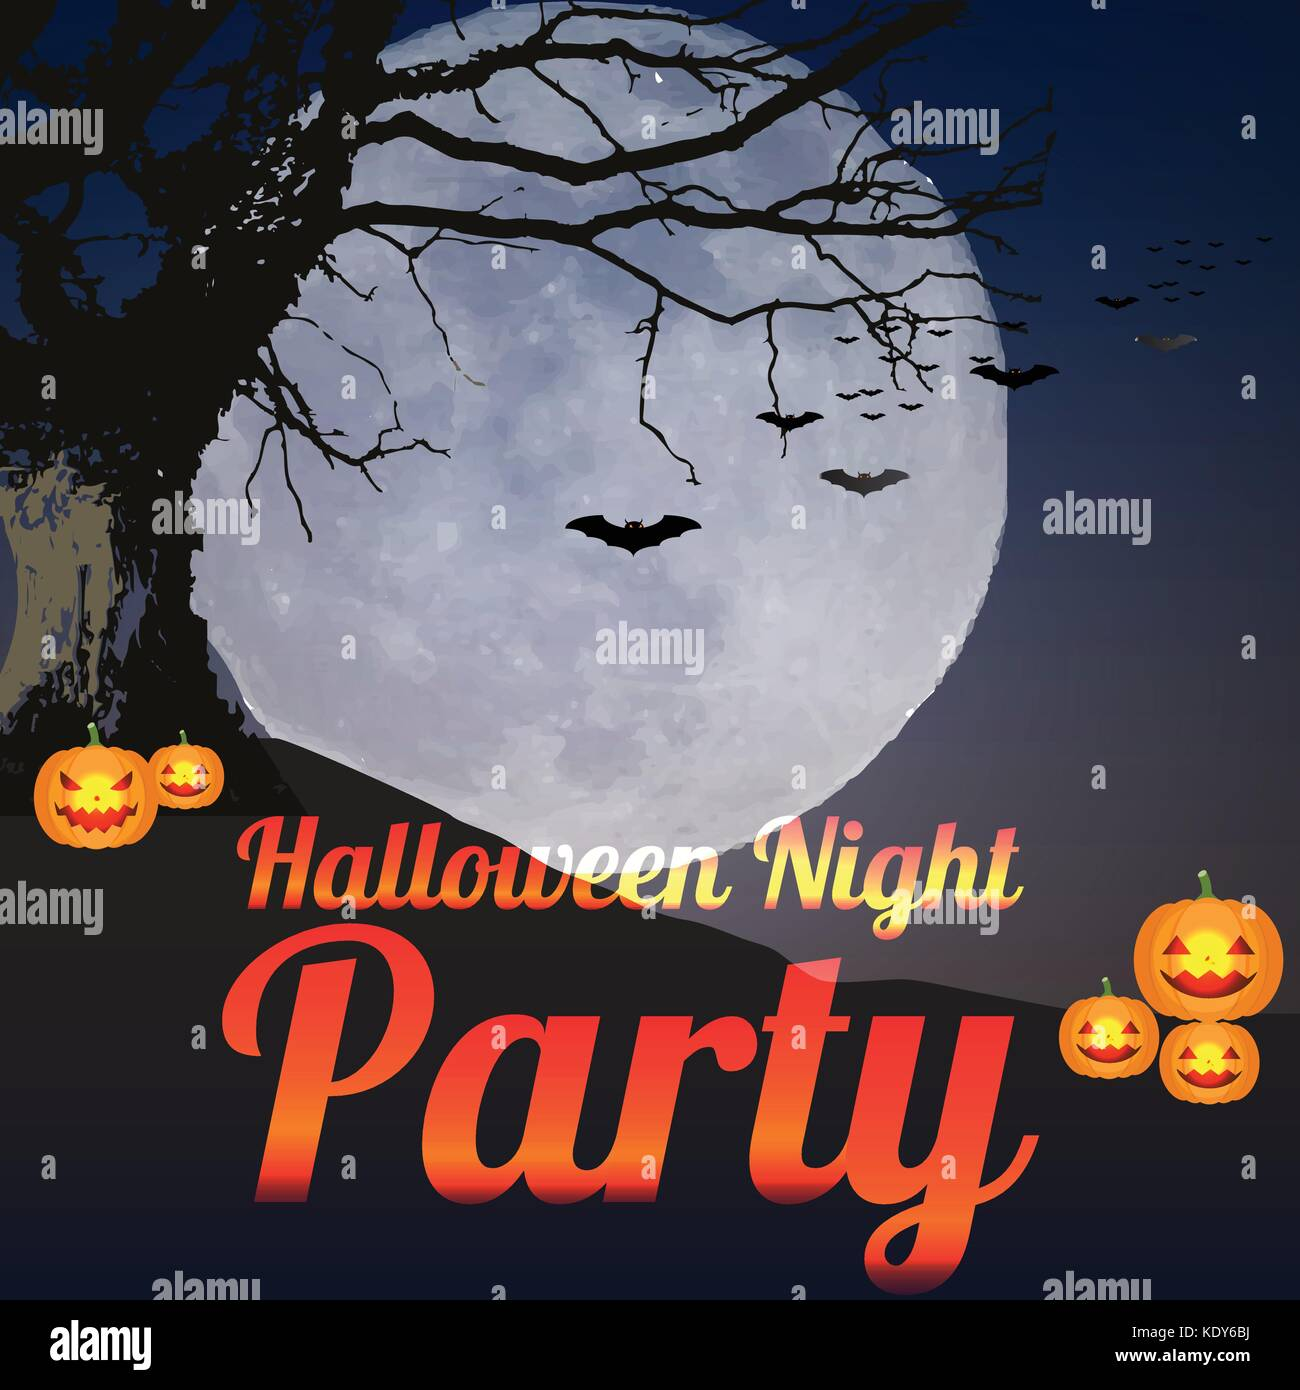 Halloween night party toile de fond vecteur illustration poster Papier peint carte postale ou de tout matériel Photo Stock